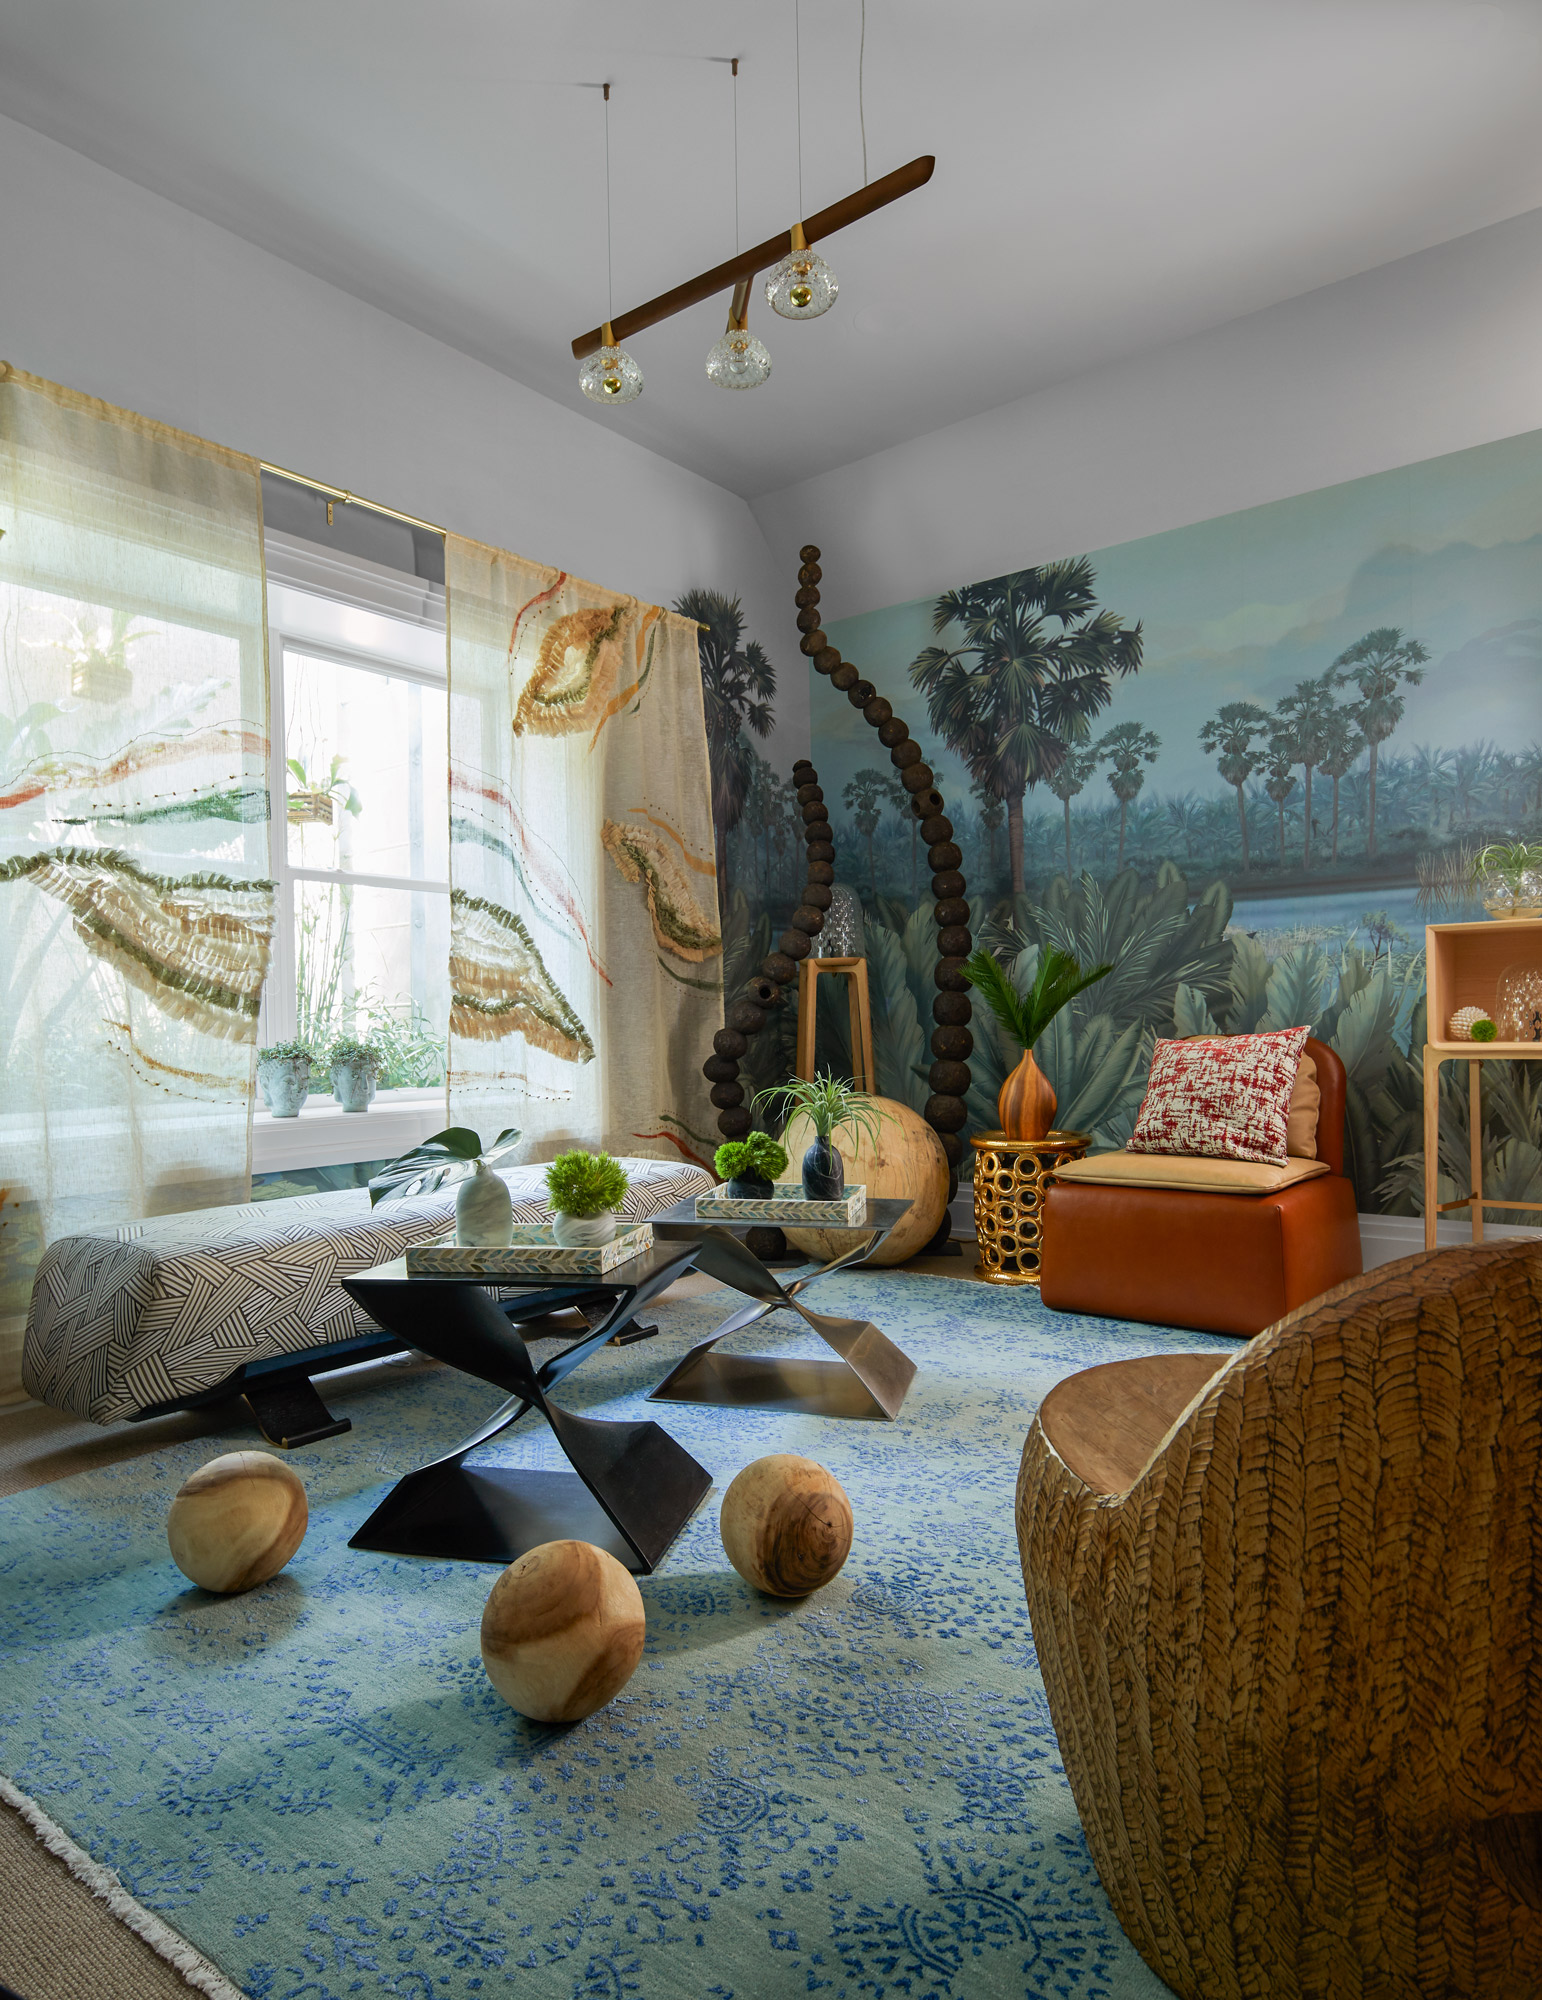 bedroom with outdoor scene wallcovering